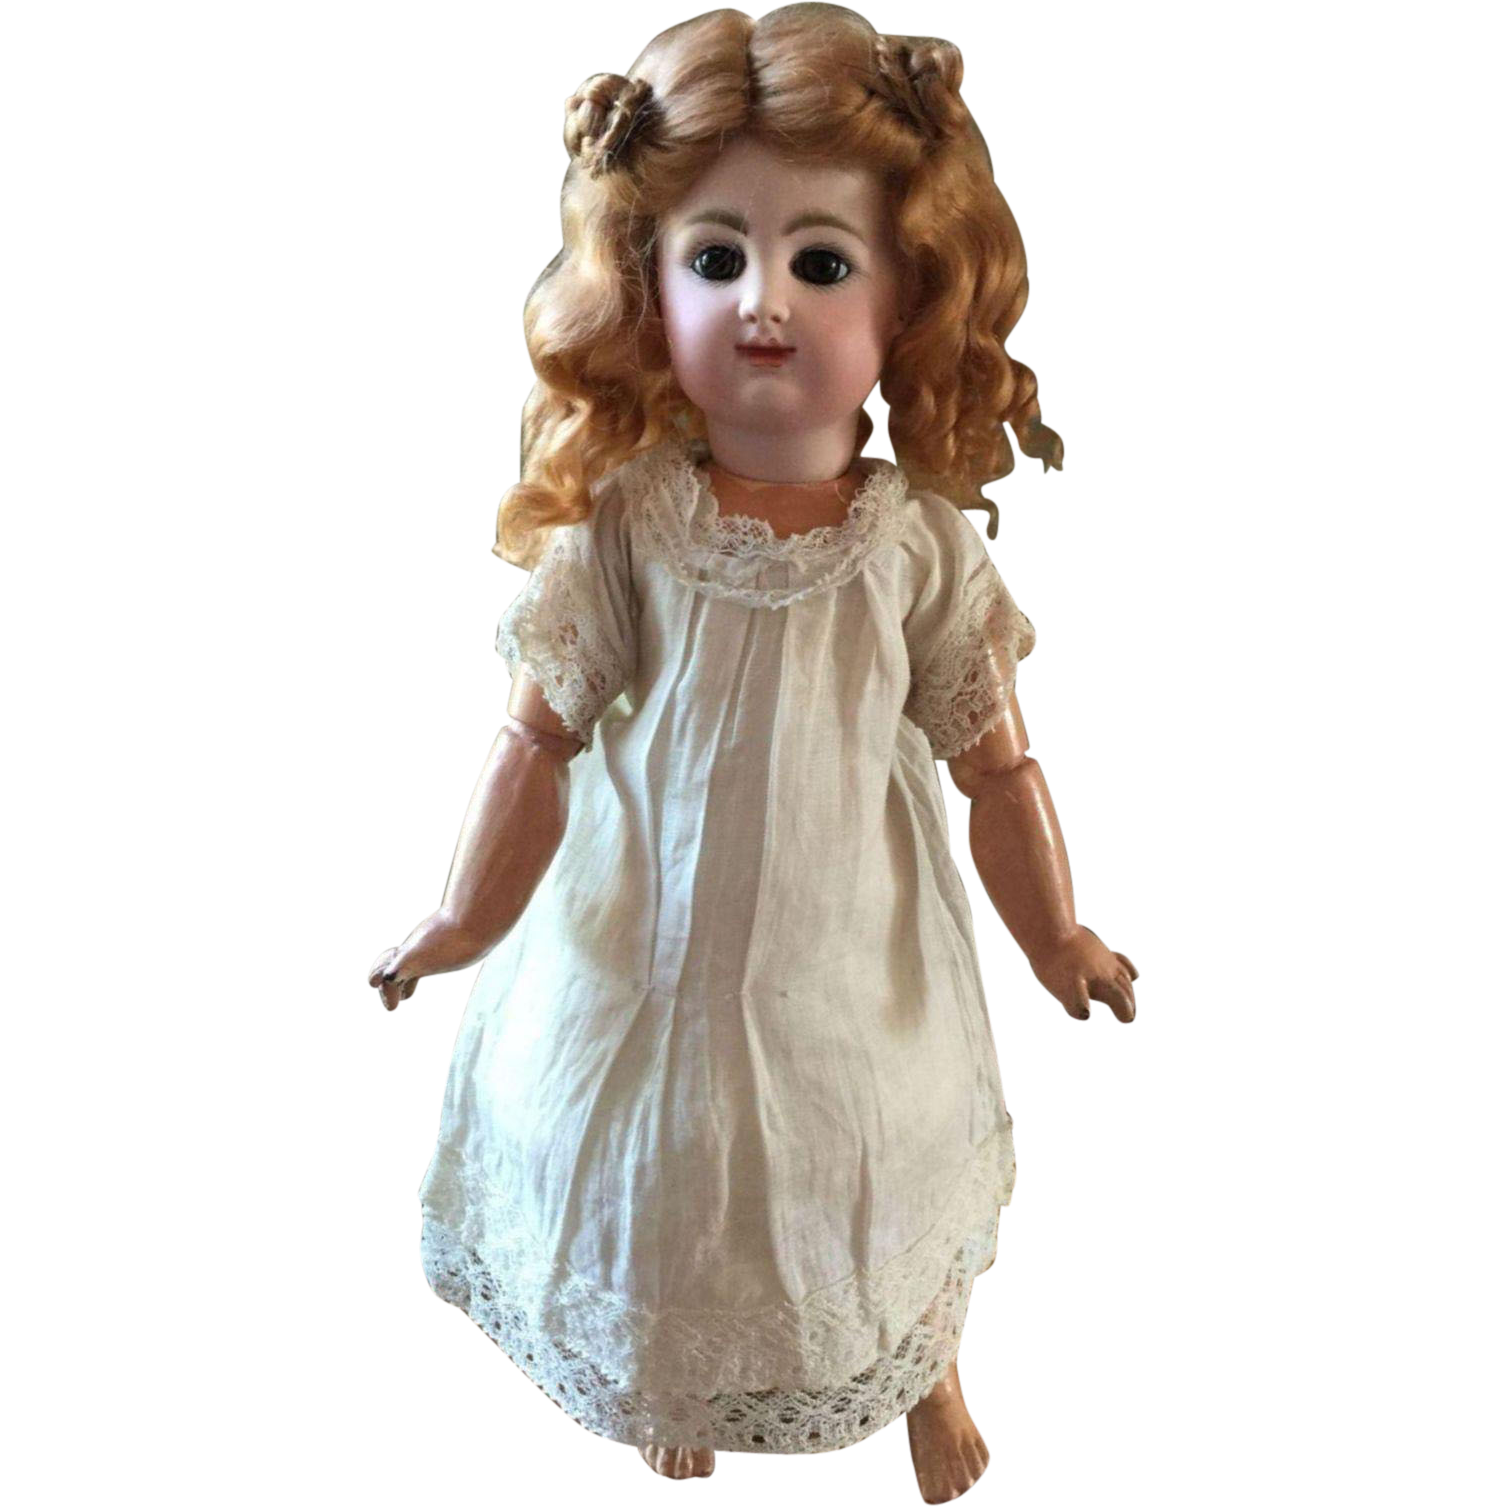 Factory Original French Bebe Chemise or Nightgown c. 1885